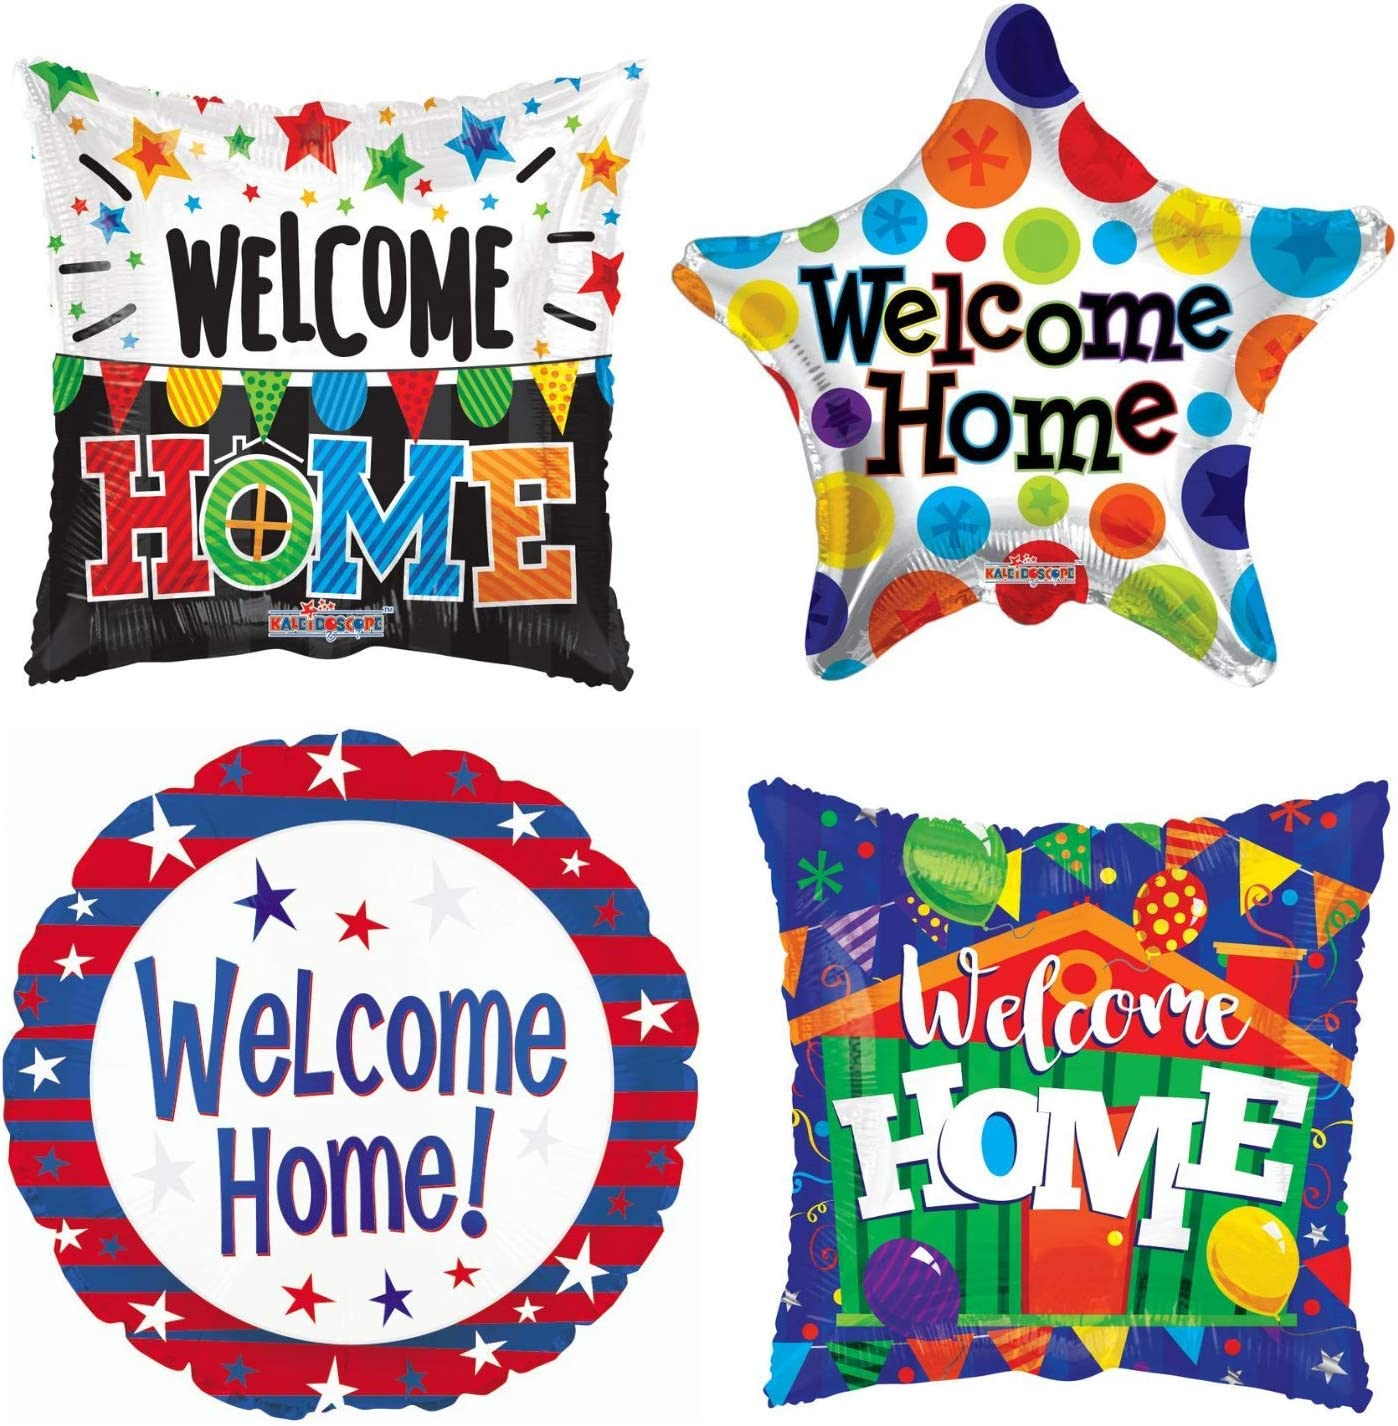 Welcome Home Balloon Decorations - Set Of 4 Party Balloons For A Simple American Home Decor. Great For A Housewarming Or A Welcome Back Military Homecoming